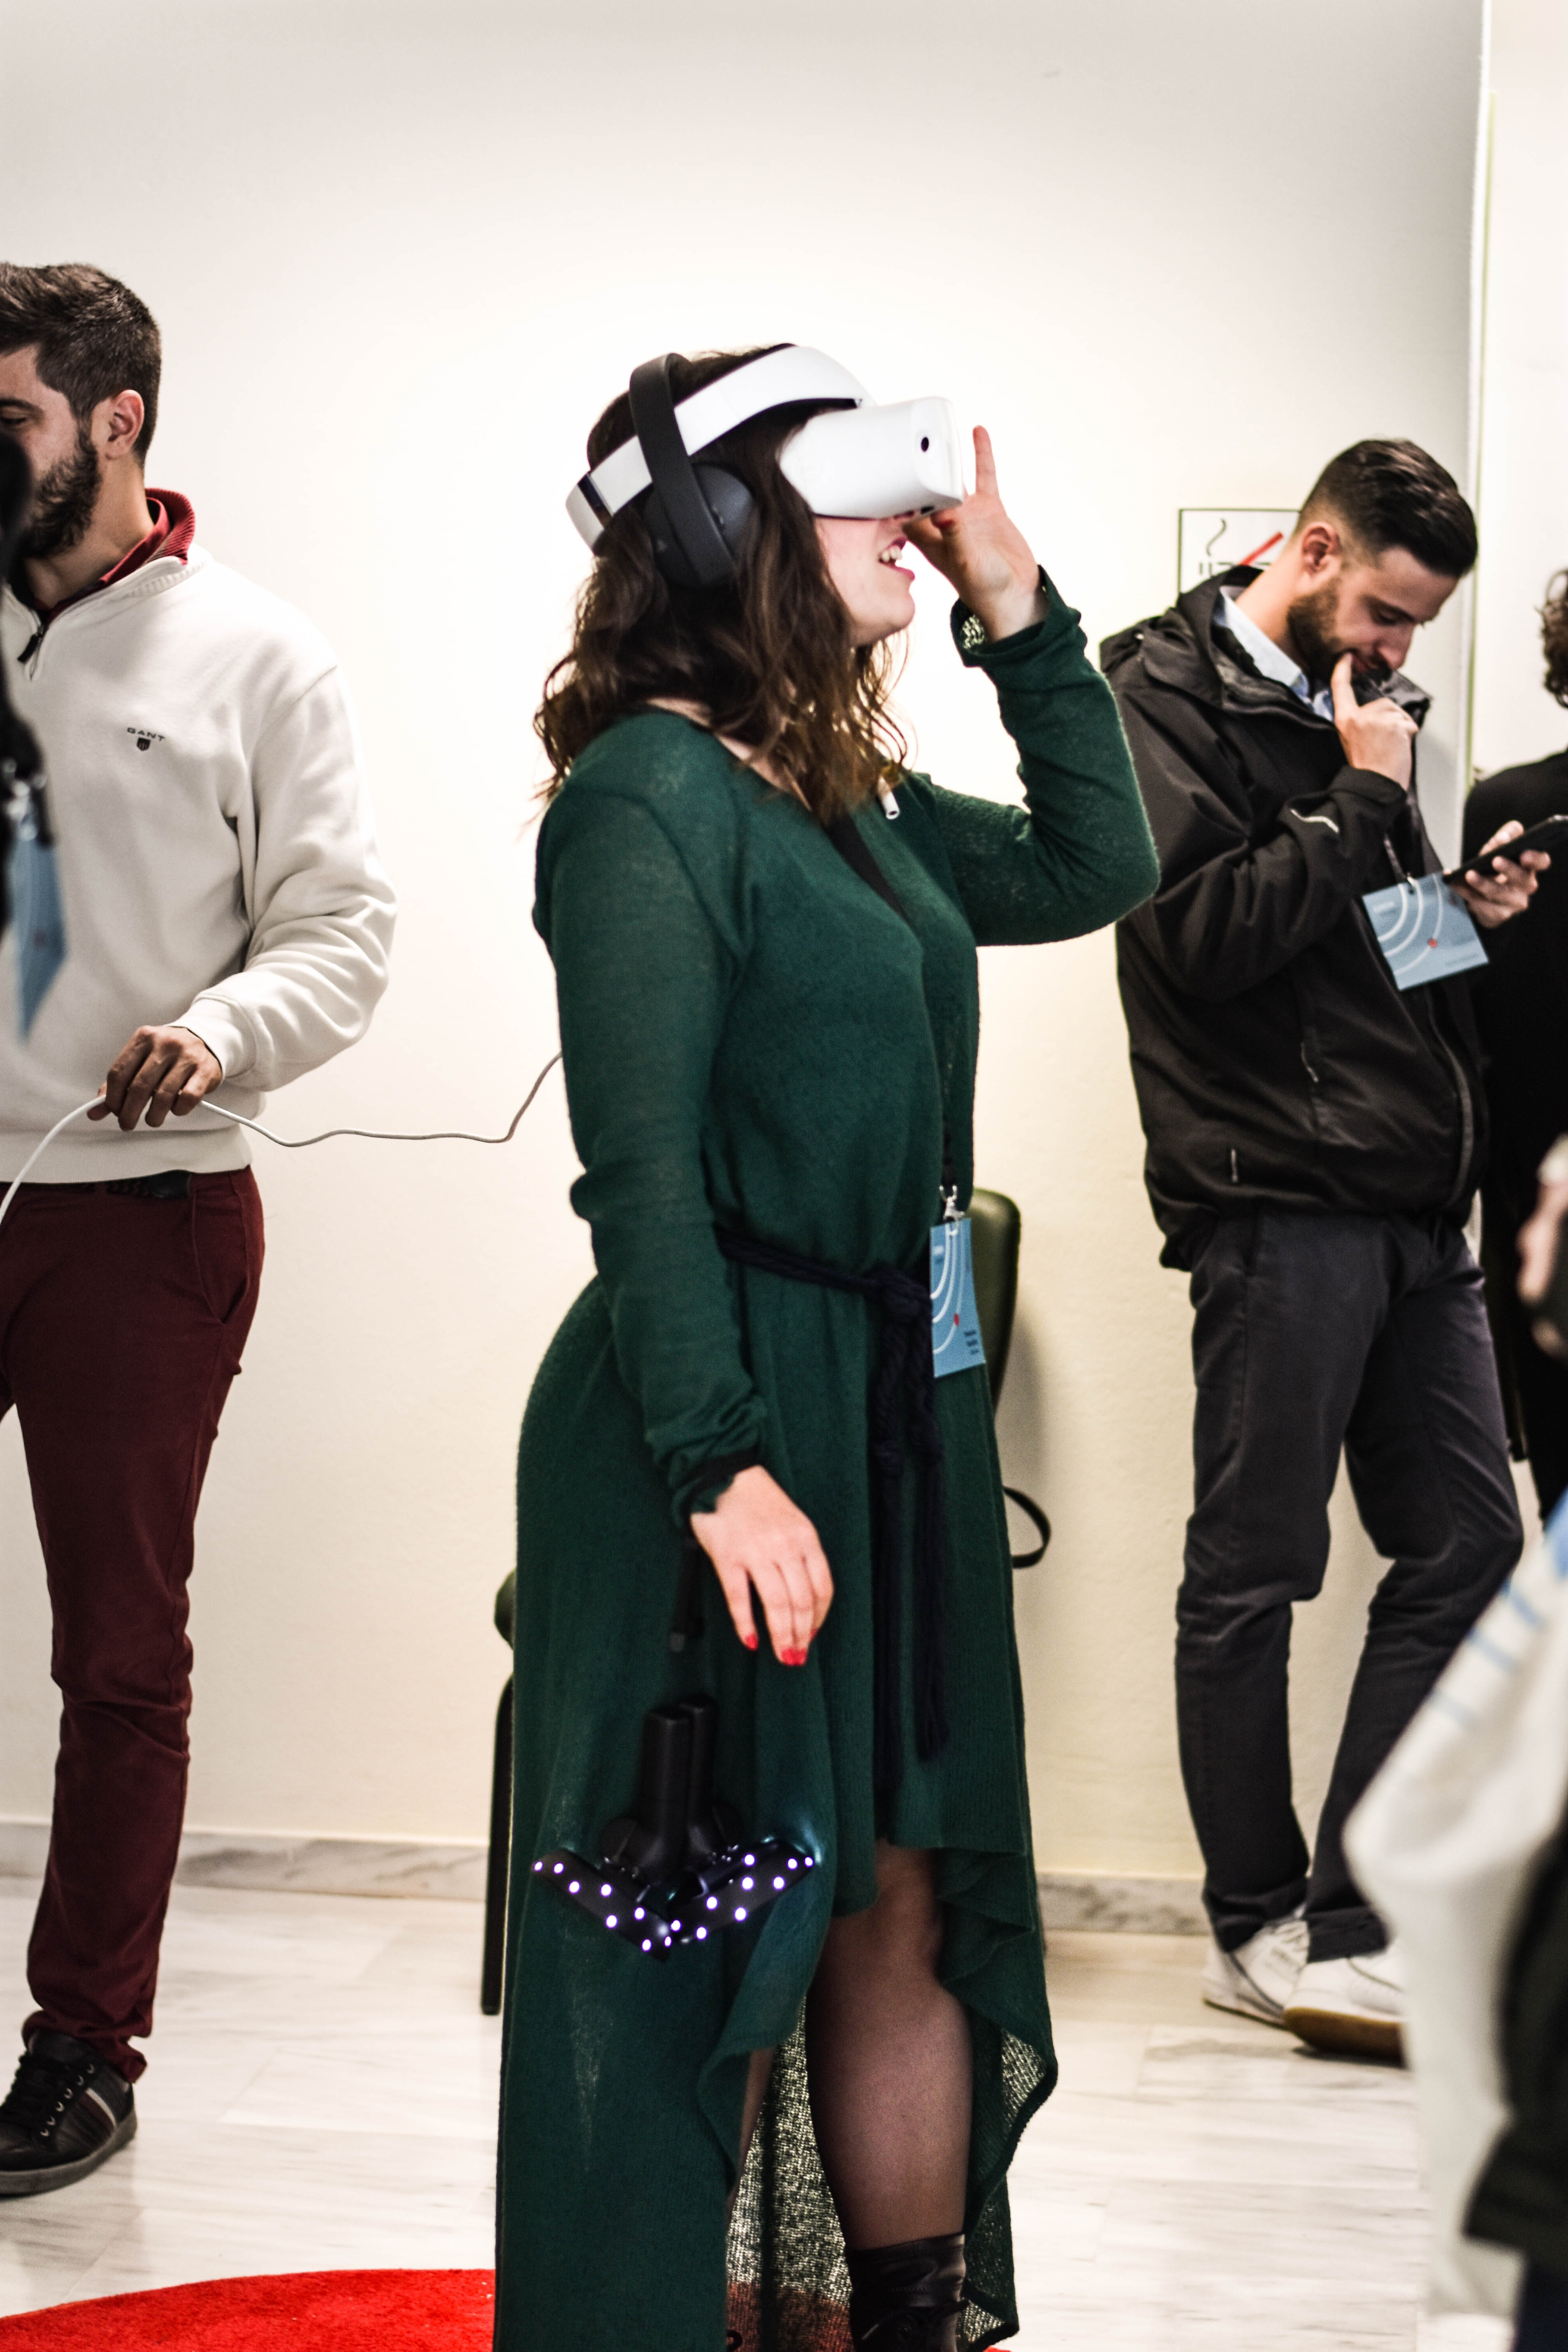 VR technology could have a positive impact on your business.